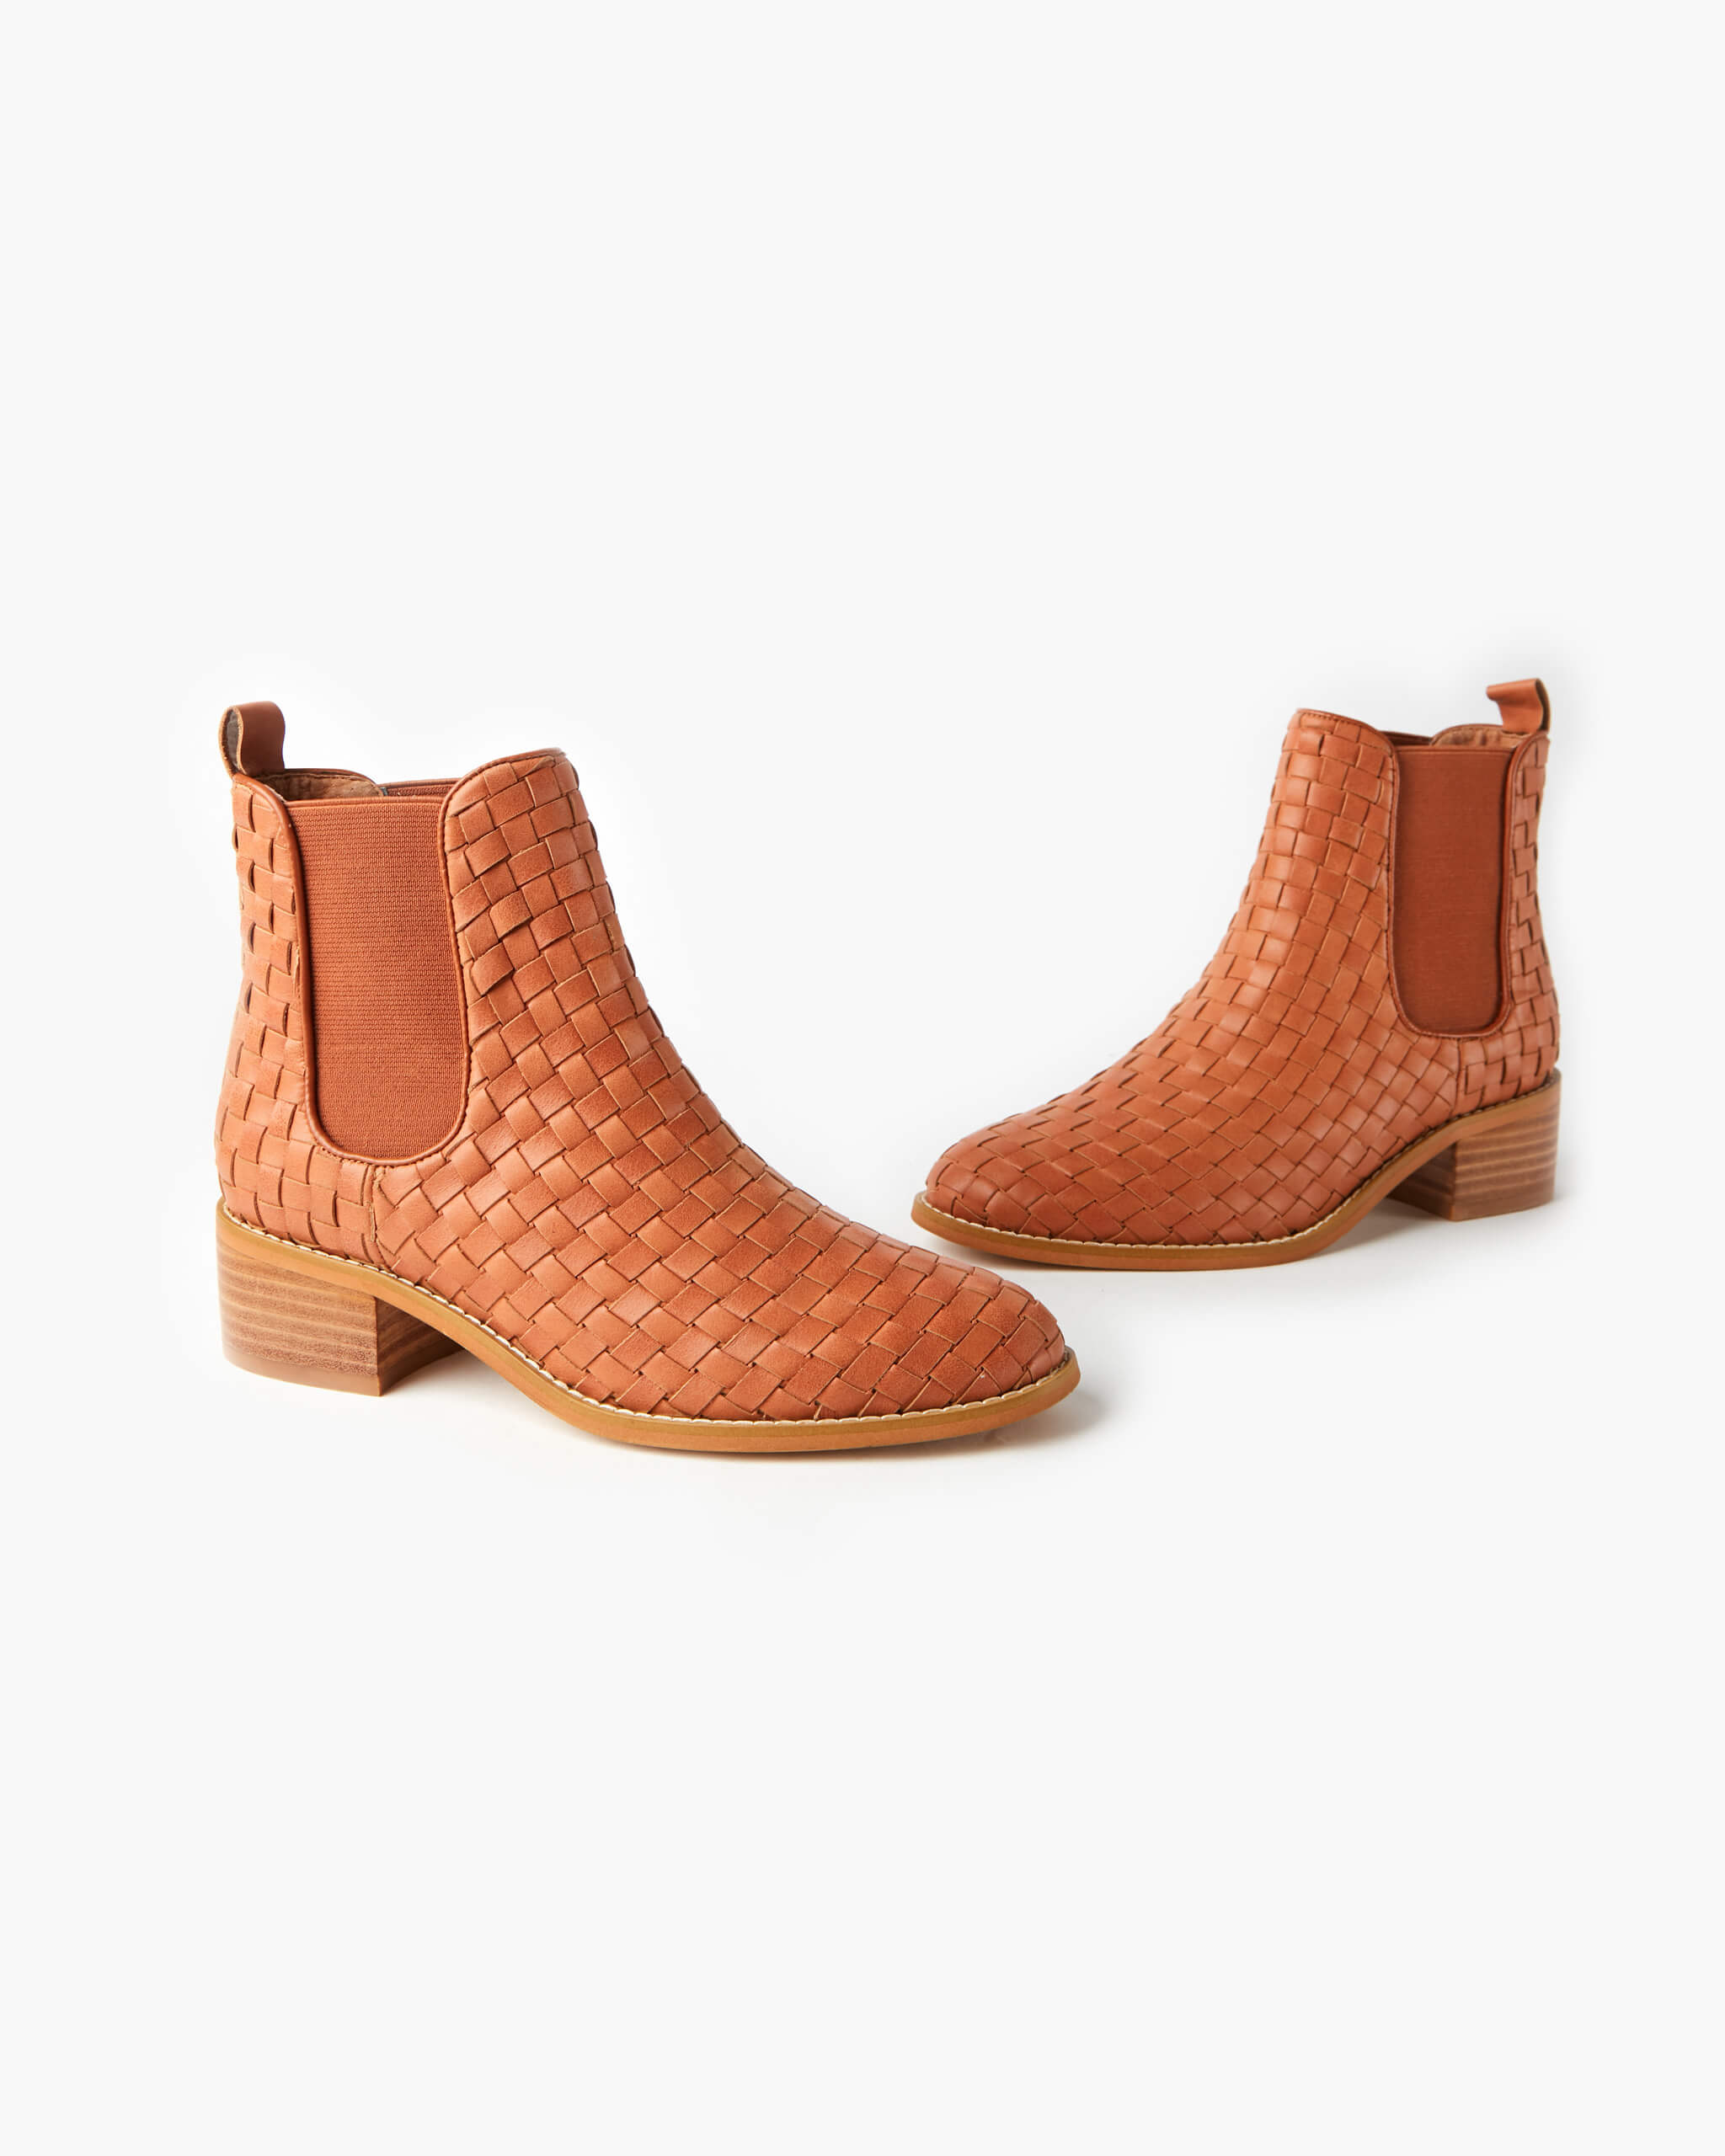 Grace Leather Weave Ankle Boot - Tan